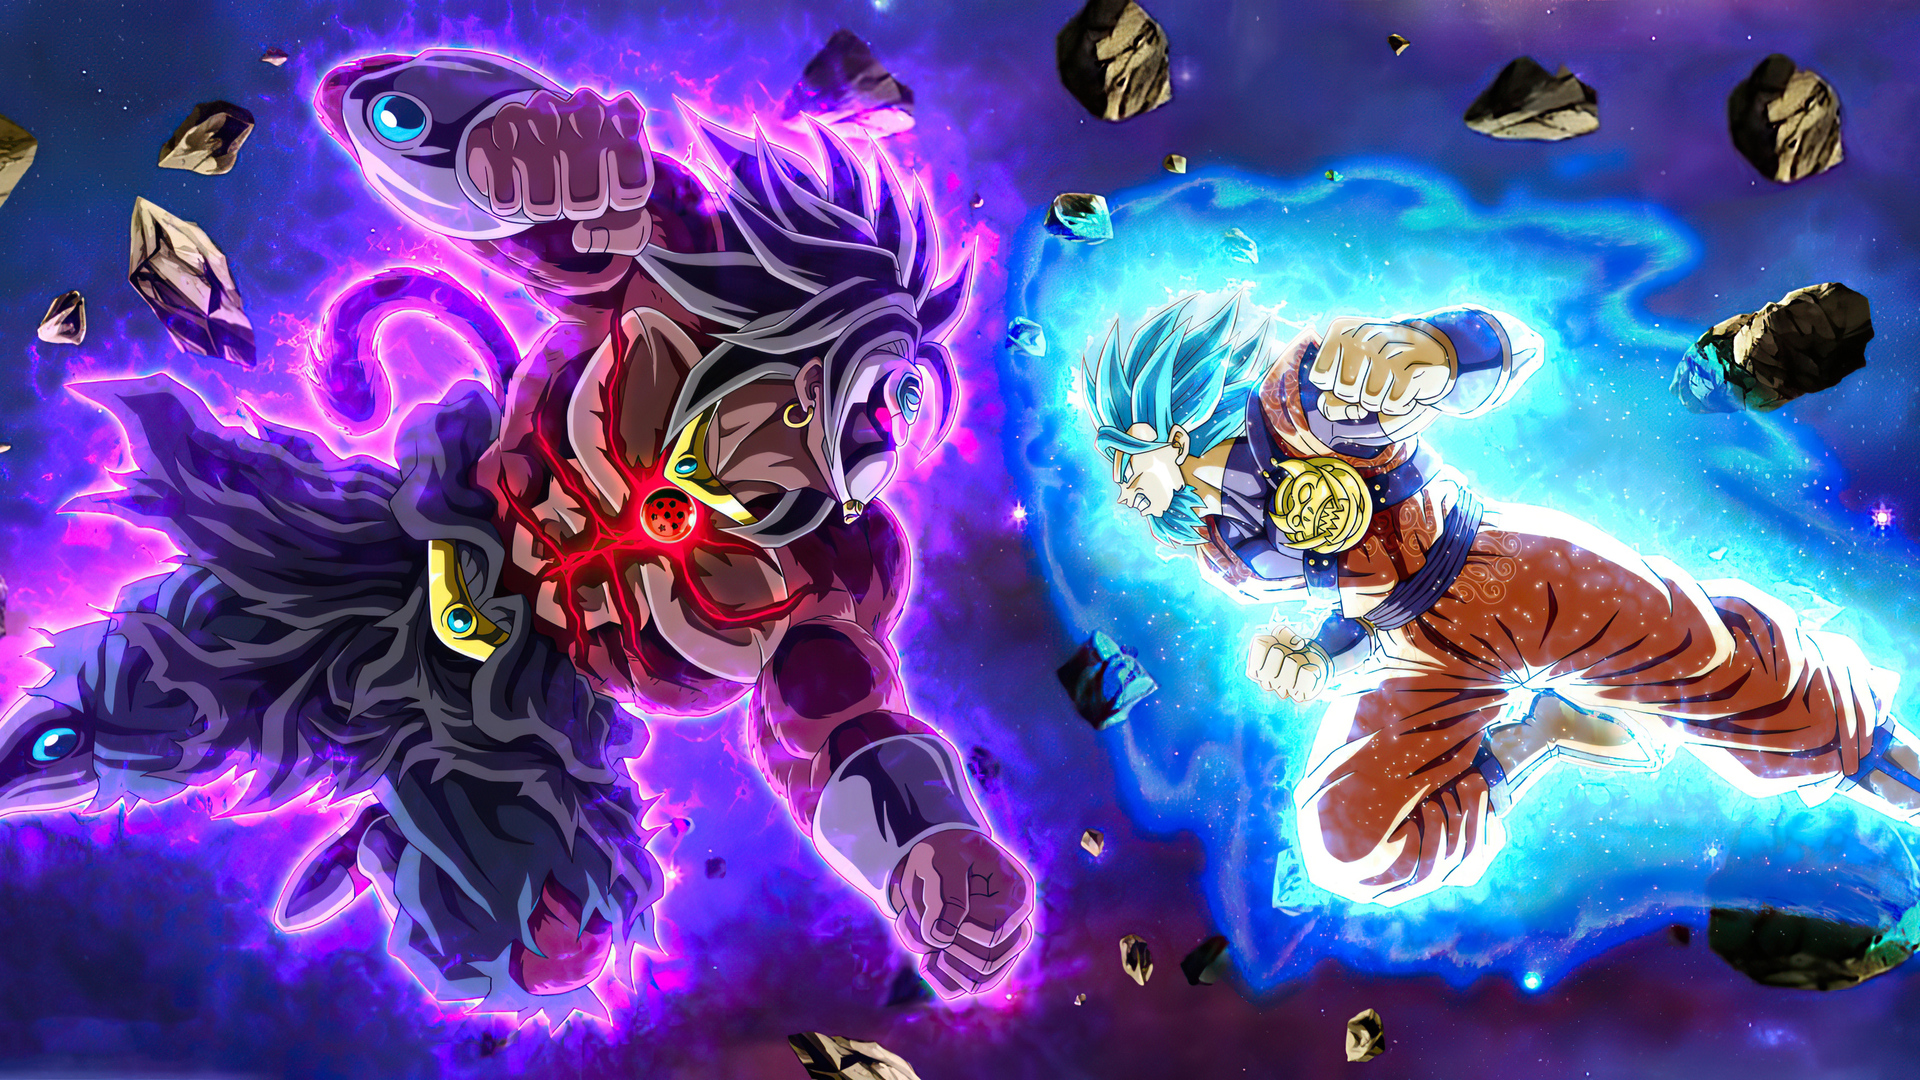 1920x1080 Saiyan Oc Vs Dark Broly Laptop Full Hd 1080p Hd 4k Wallpapers Images Backgrounds Photos And Pictures